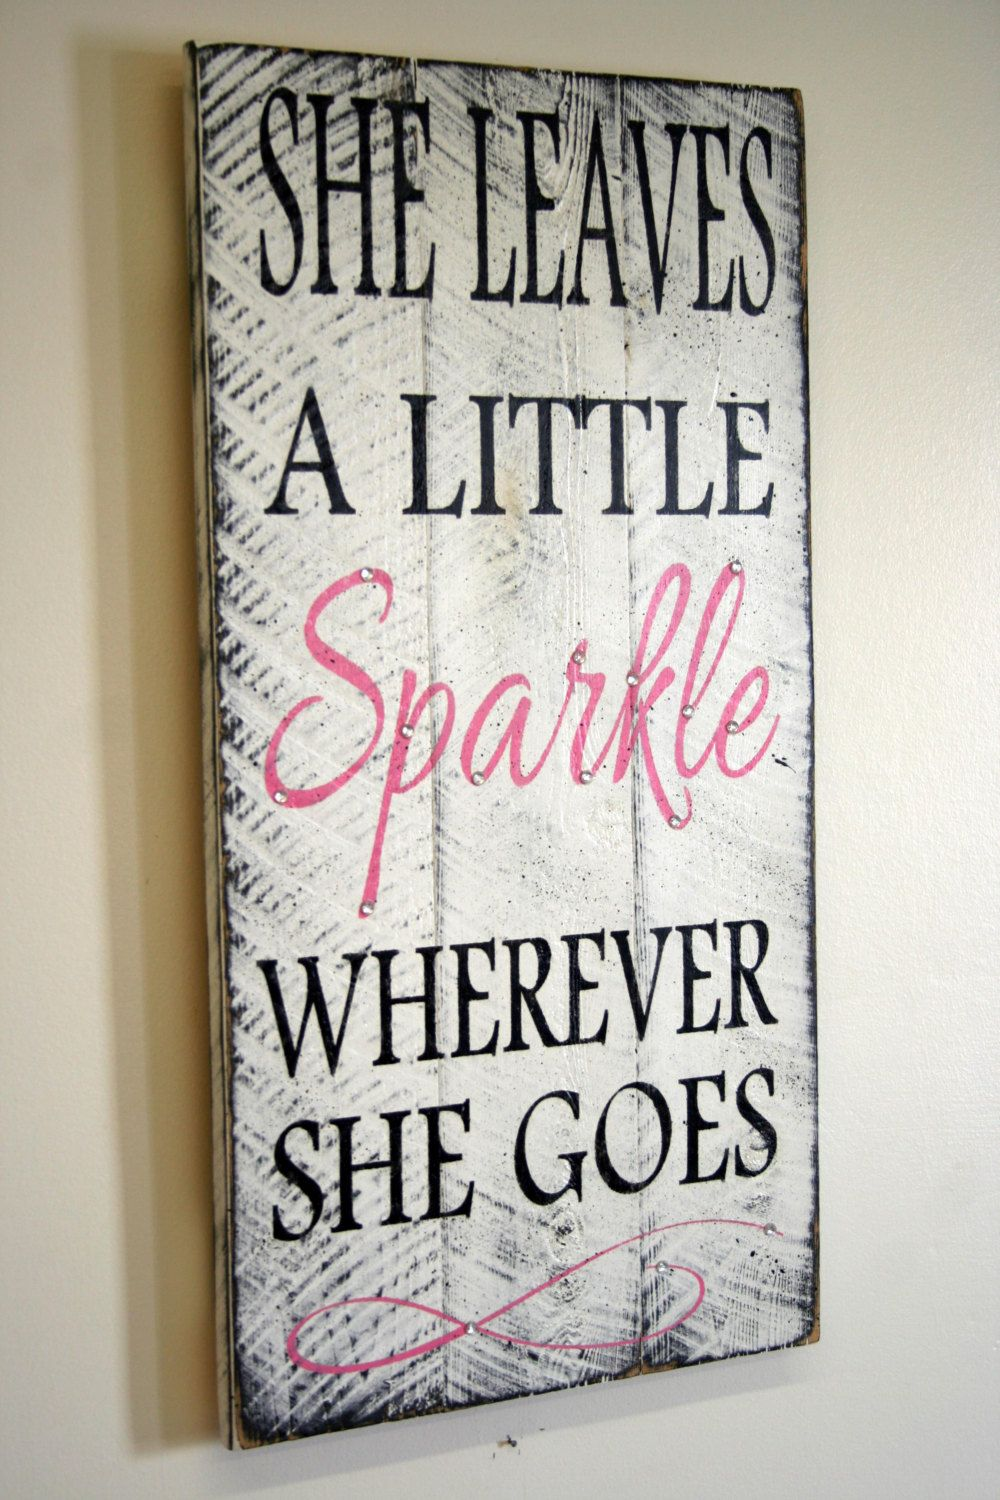 She leaves a little sparkle wherever she goes by rusticlyinspired